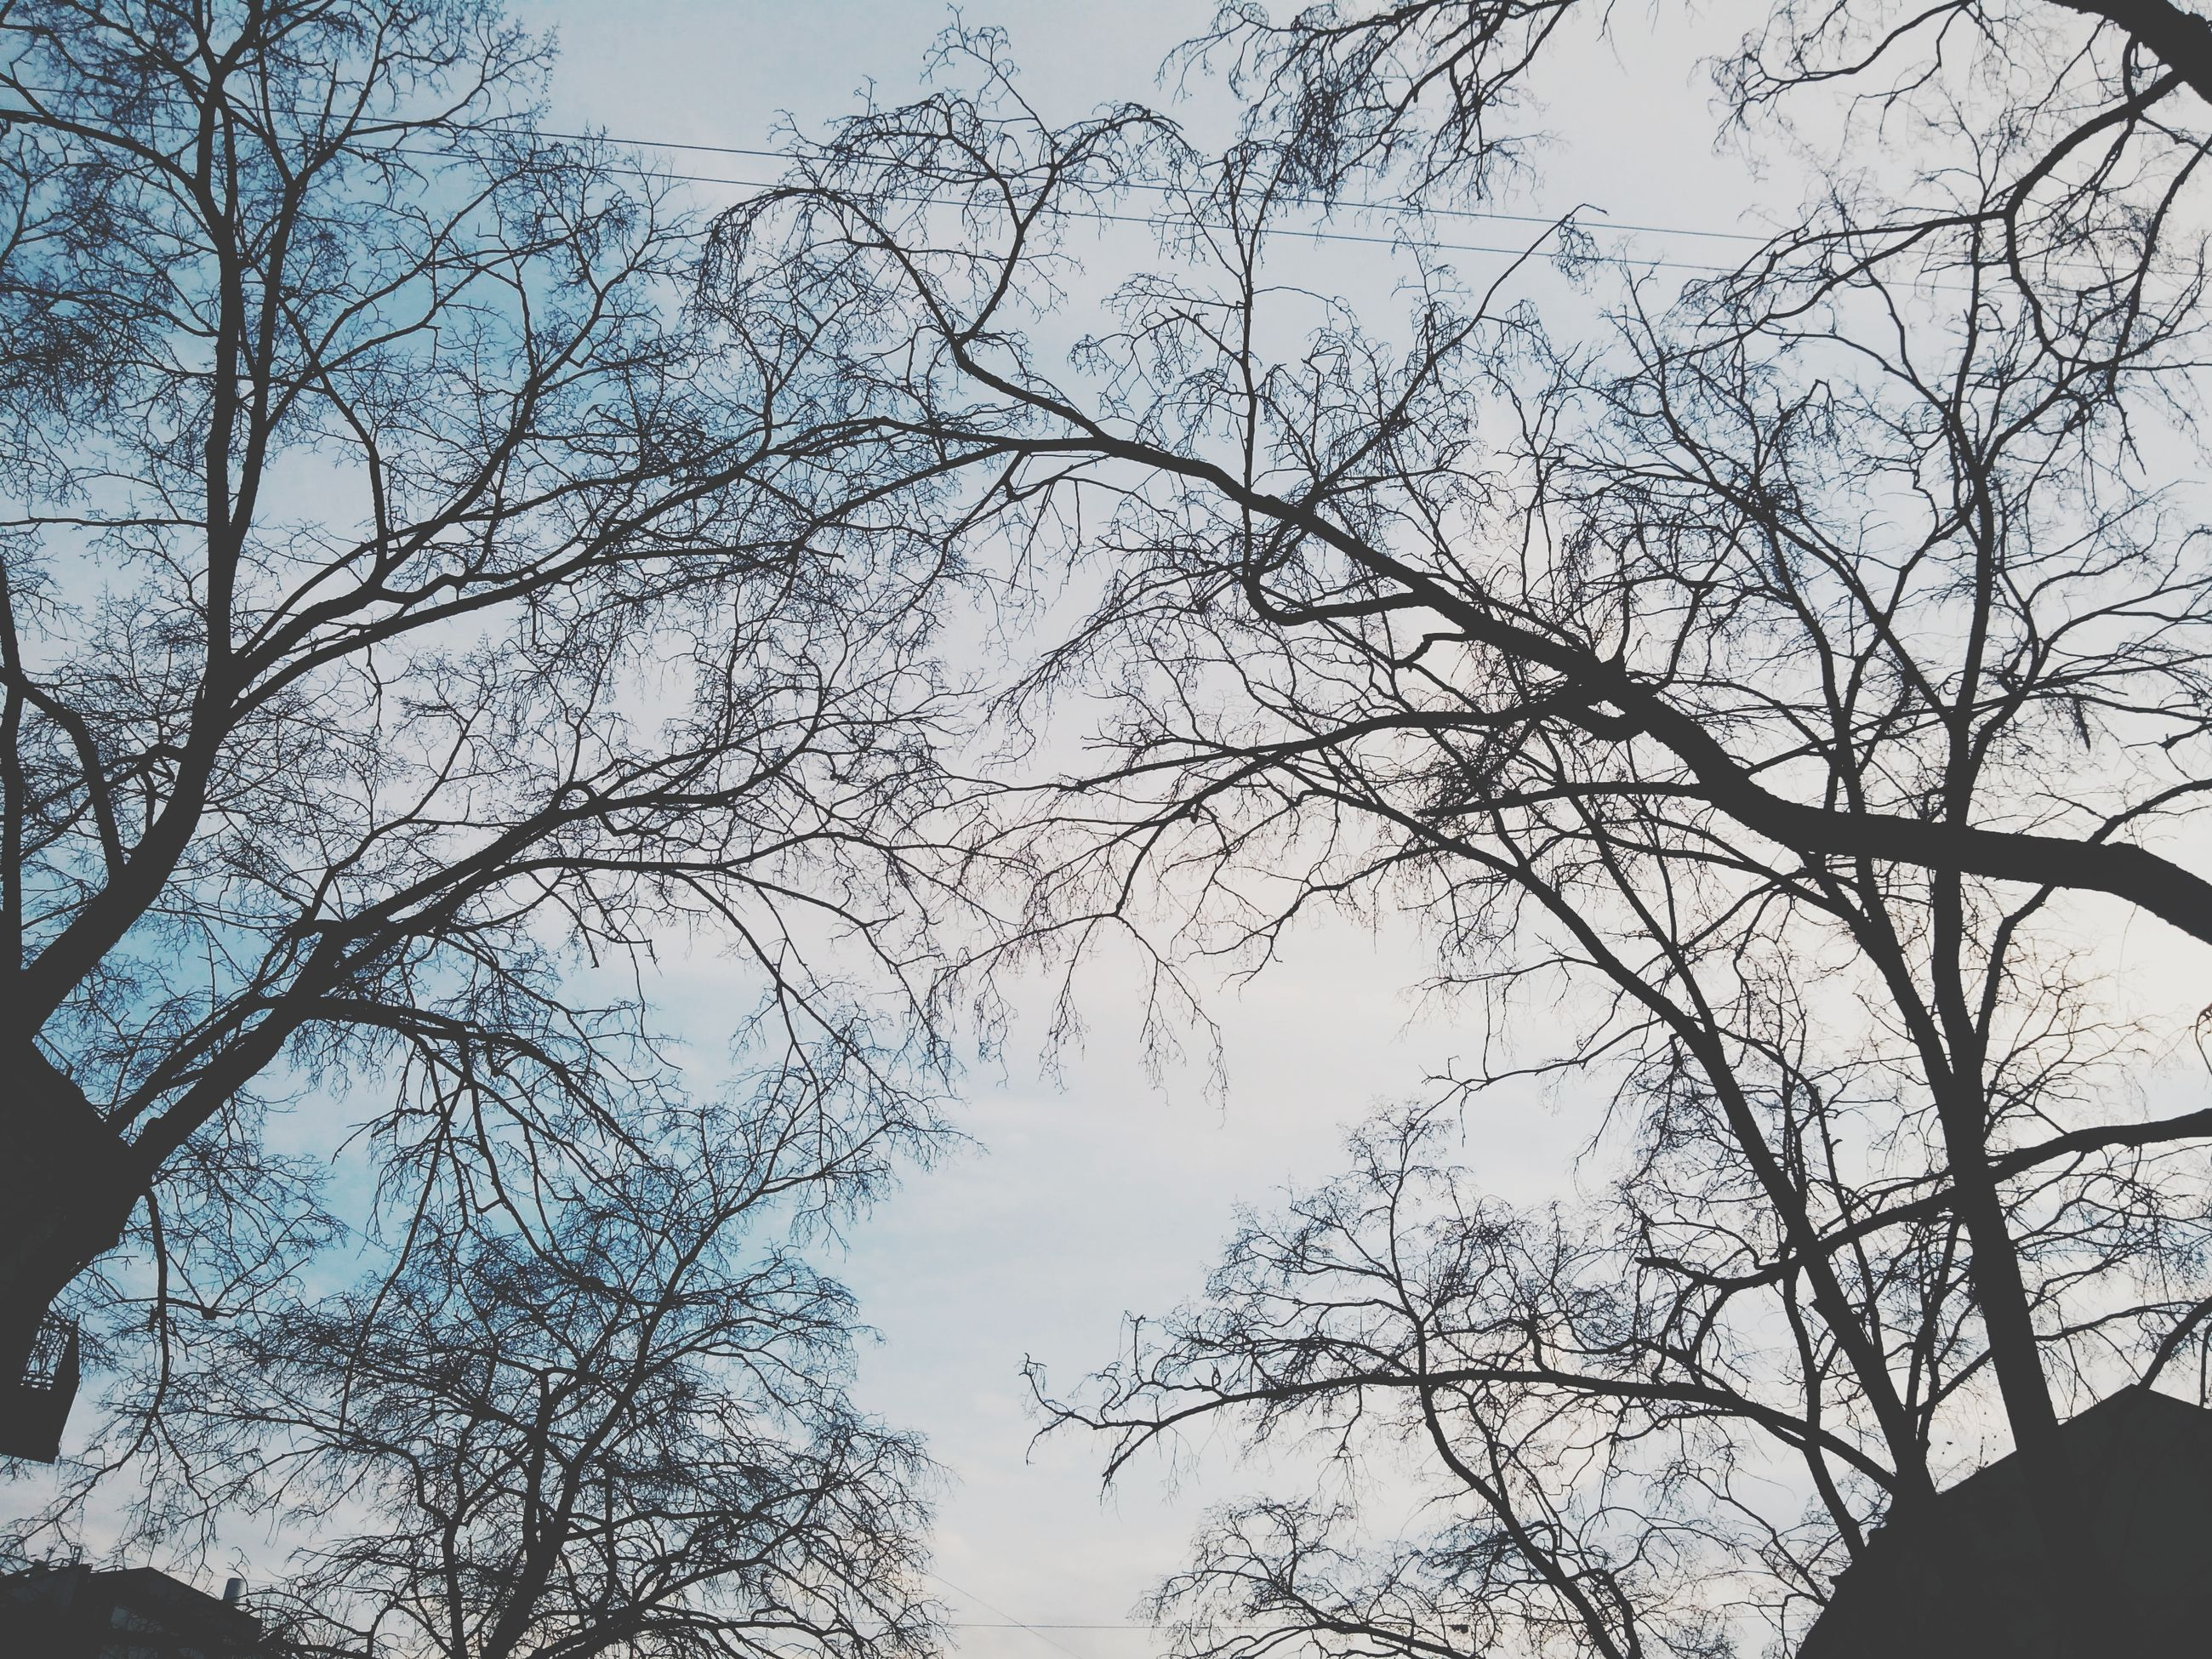 tree, low angle view, branch, bare tree, silhouette, sky, nature, tranquility, clear sky, beauty in nature, growth, outdoors, no people, high section, tree trunk, scenics, day, dusk, tranquil scene, cloud - sky